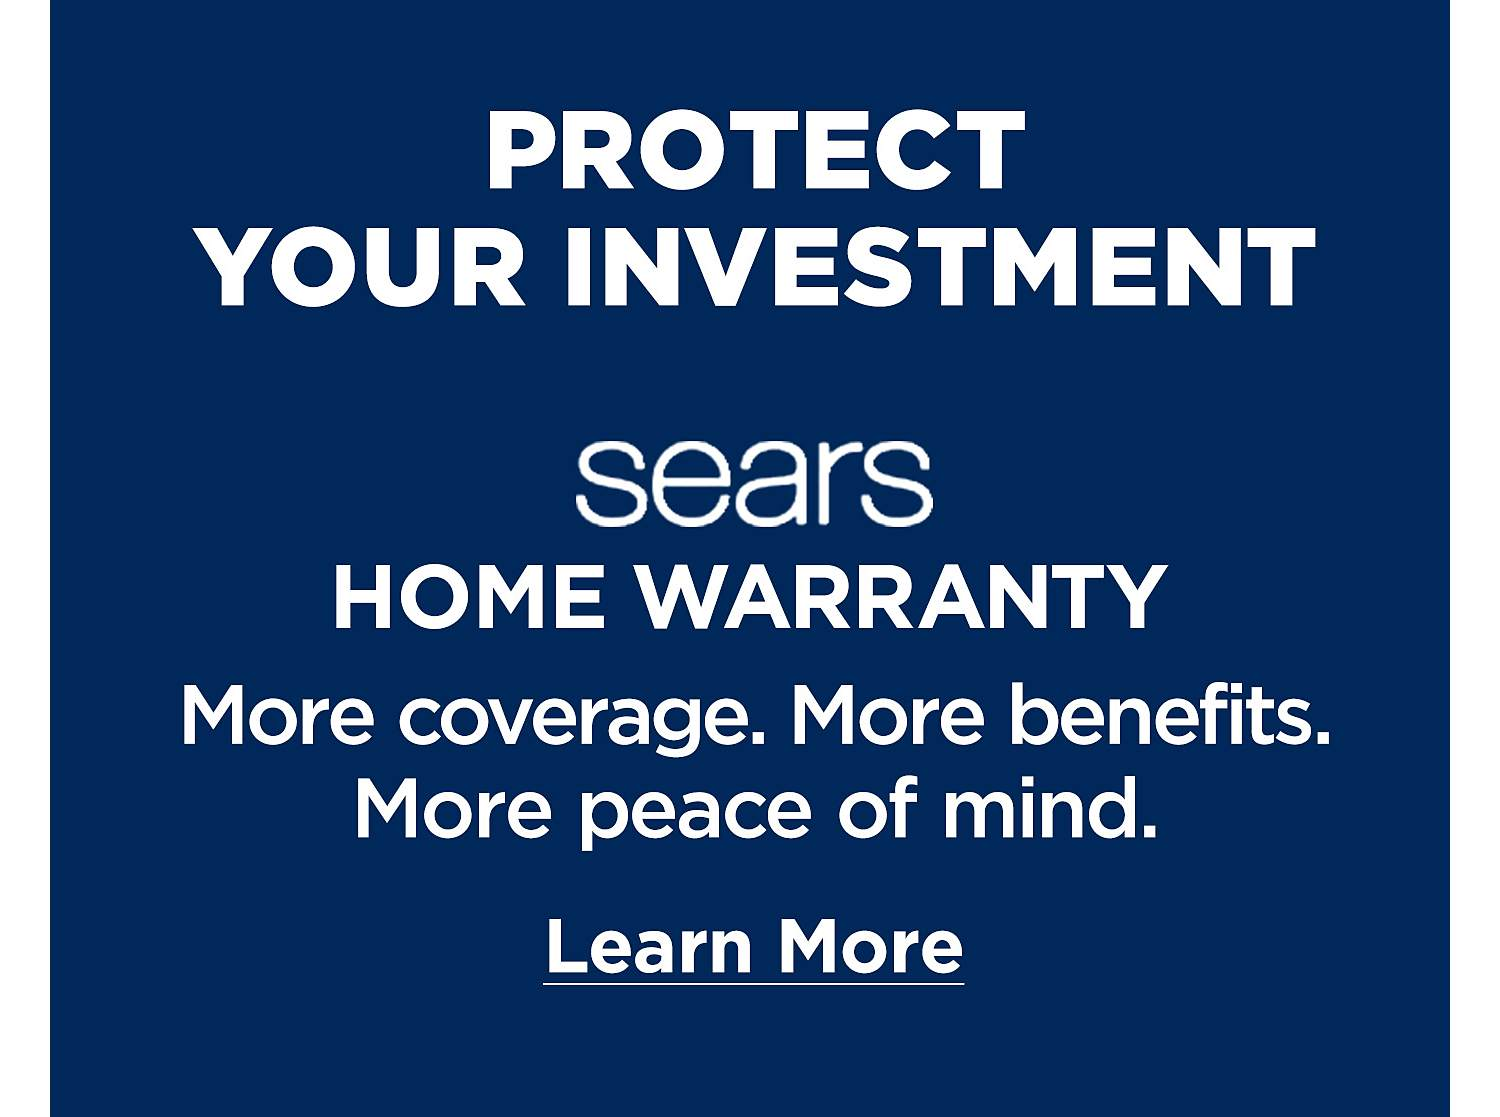 Protect Your Investment. Sears Home Warranty. read more